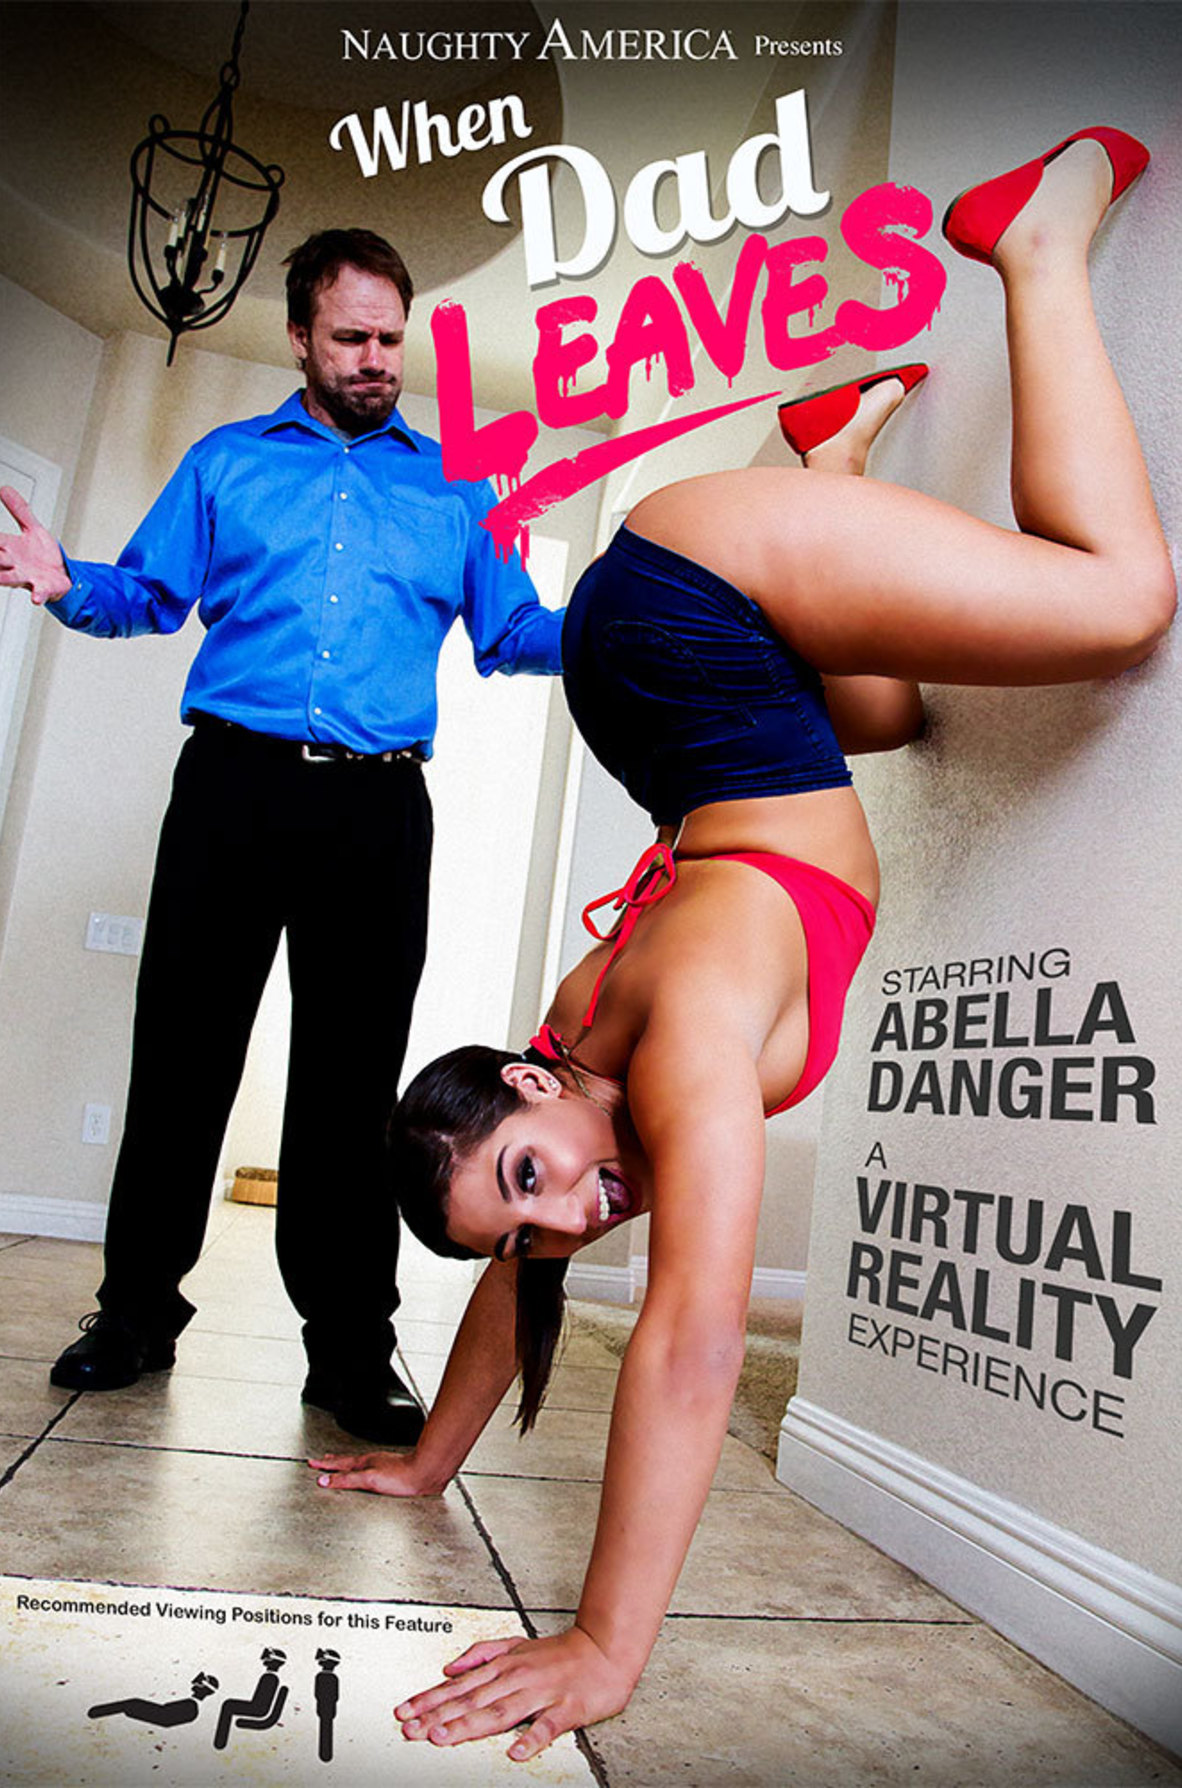 Watch Abella Danger and Xander Corvus VR video in Naughty America